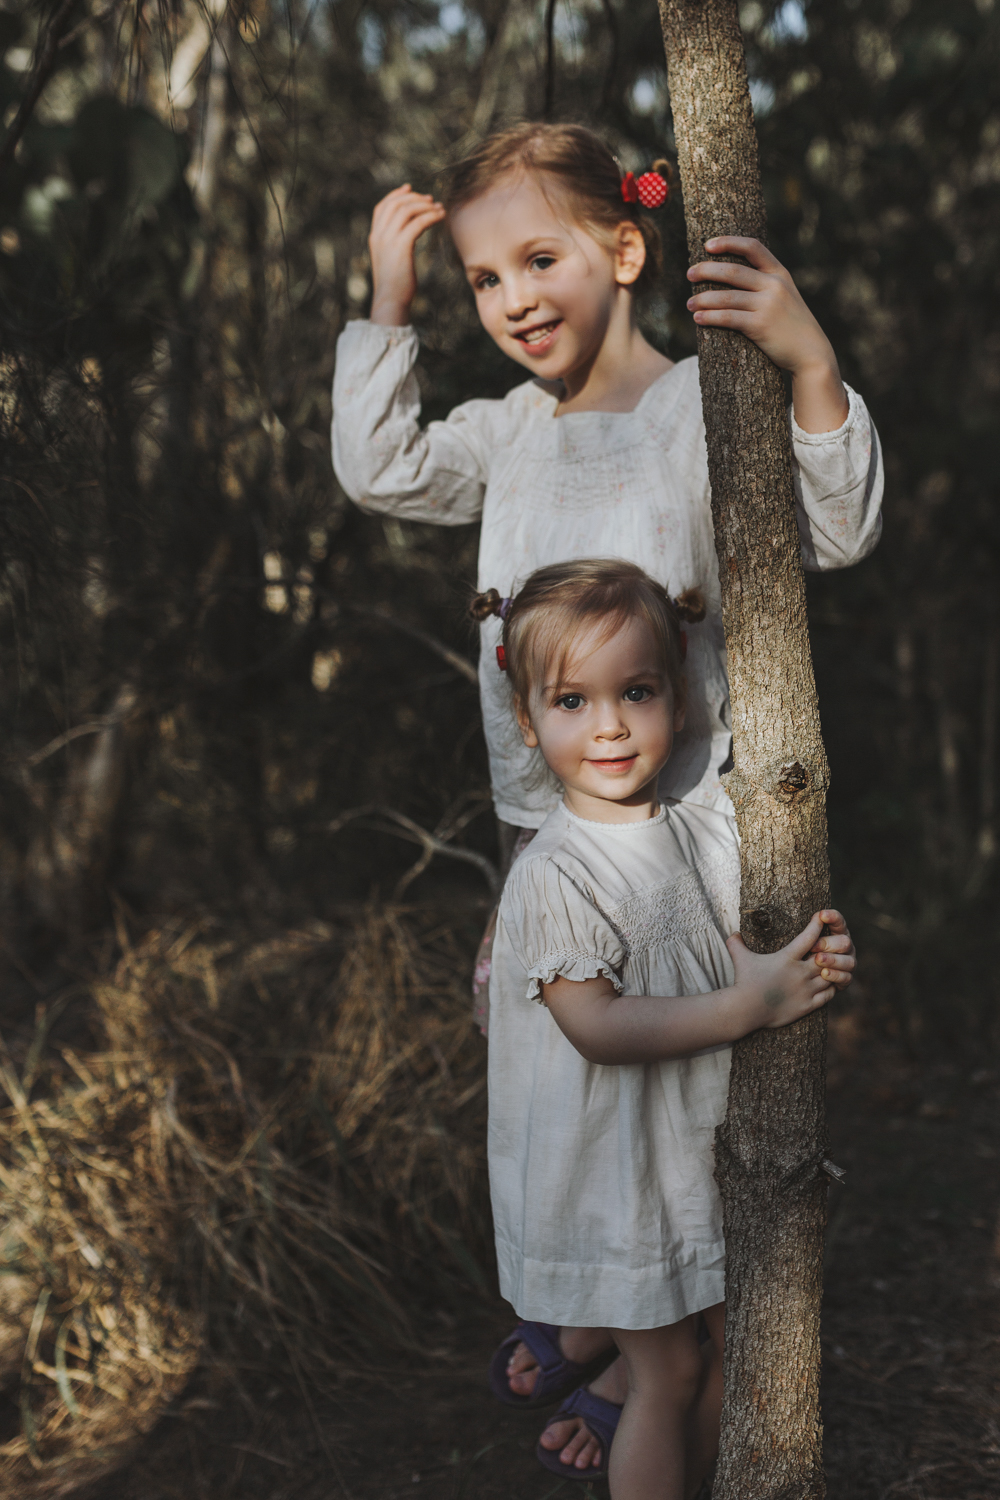 Sisters play in forest during beautiful photo session in Brisban